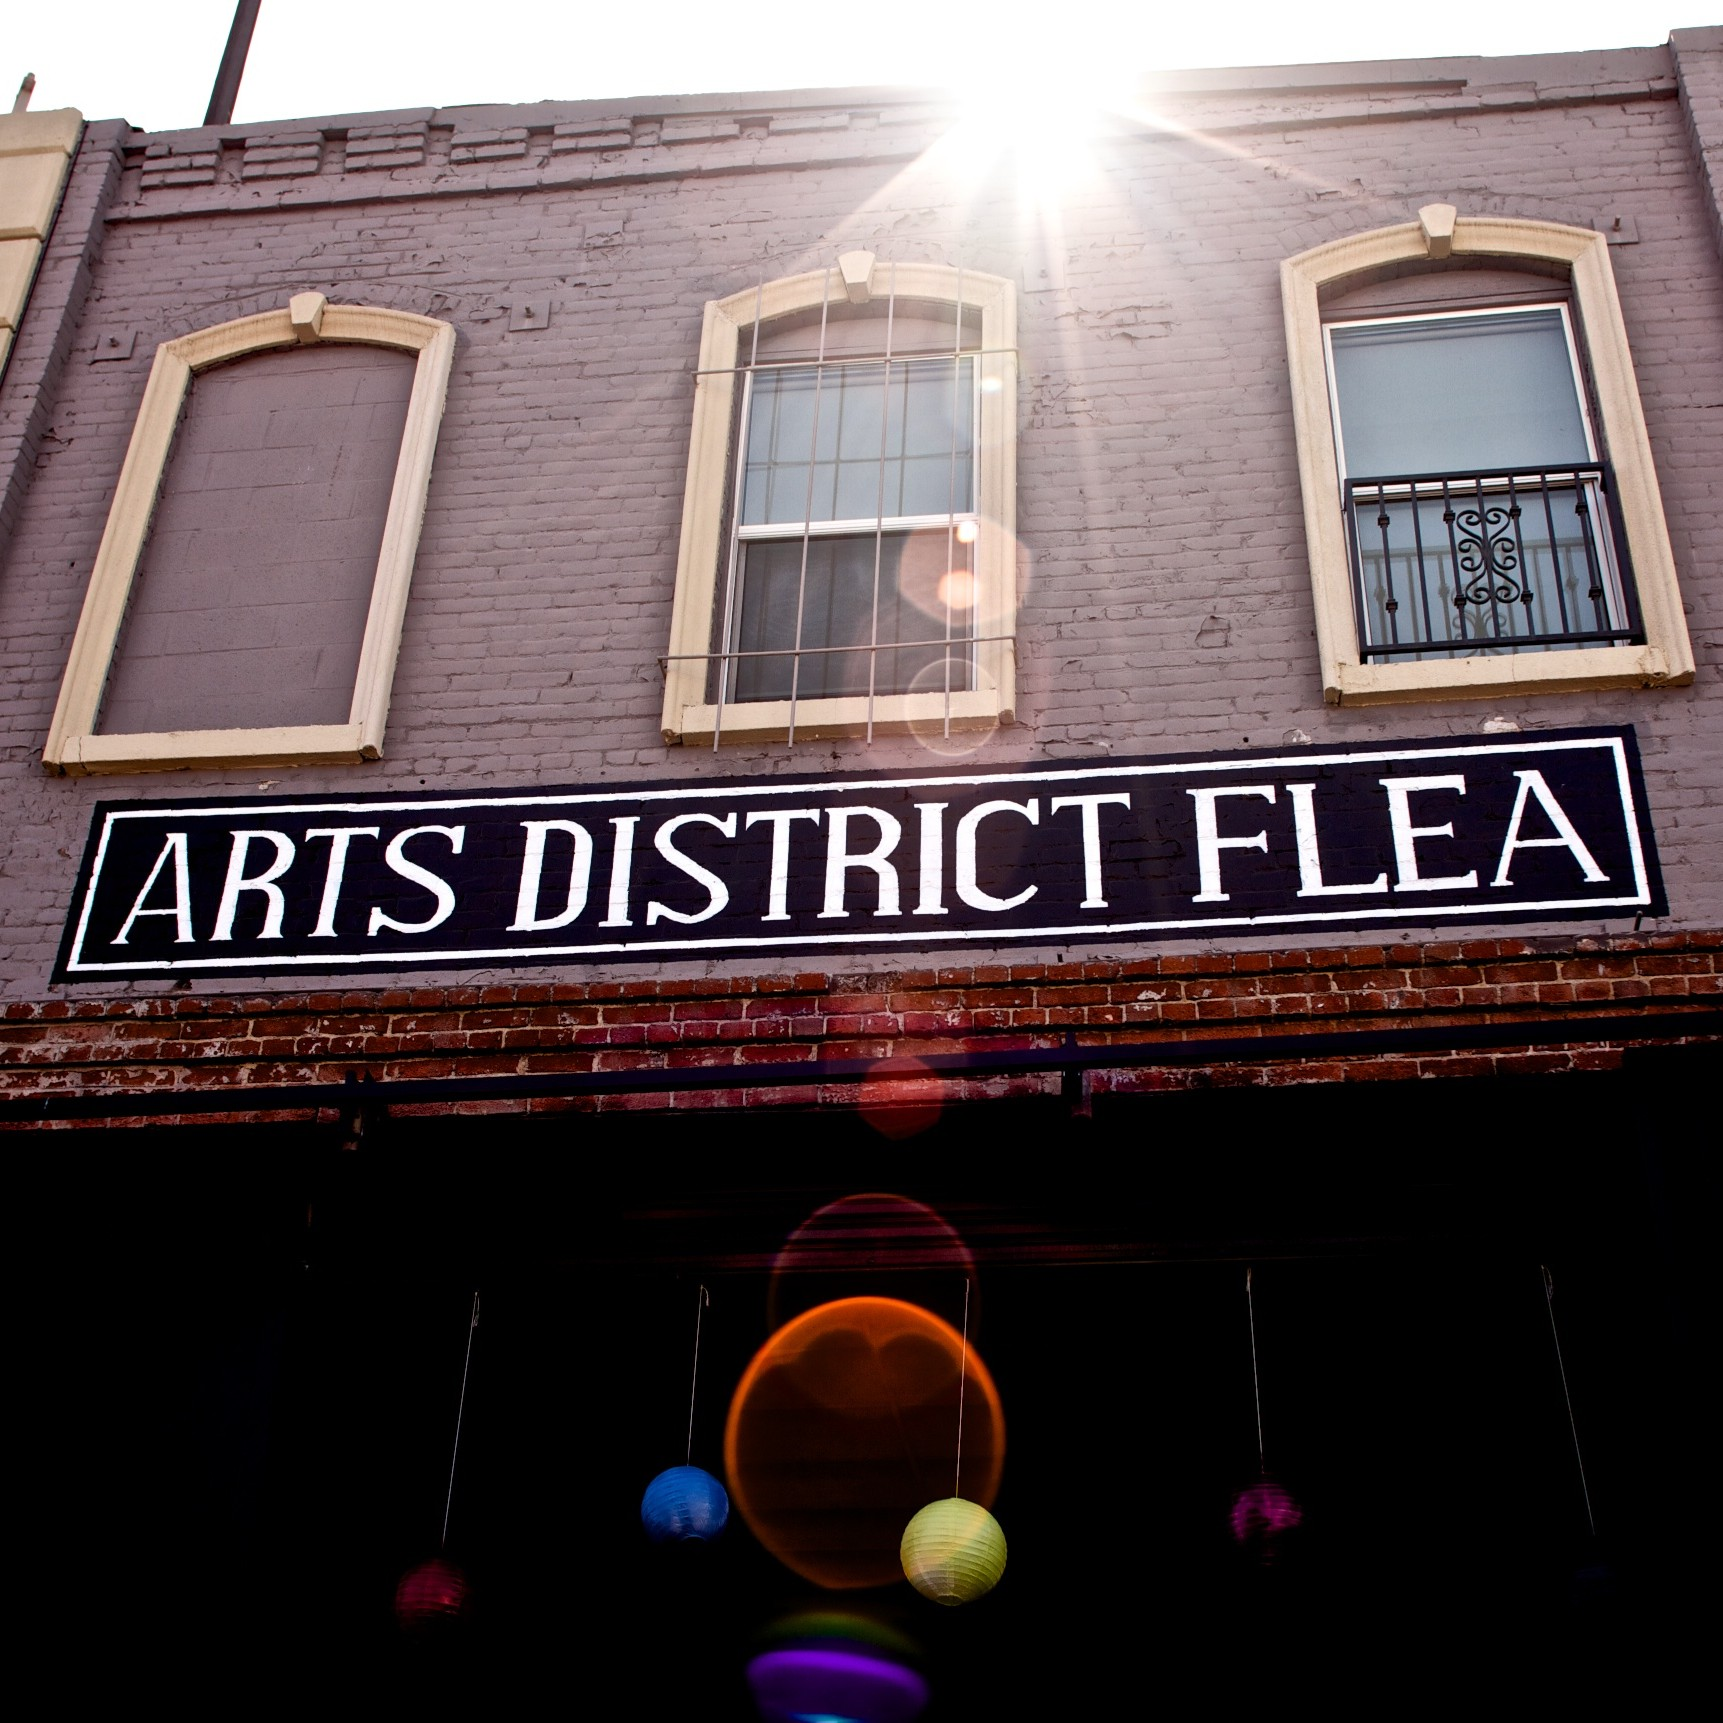 Arts District Flea